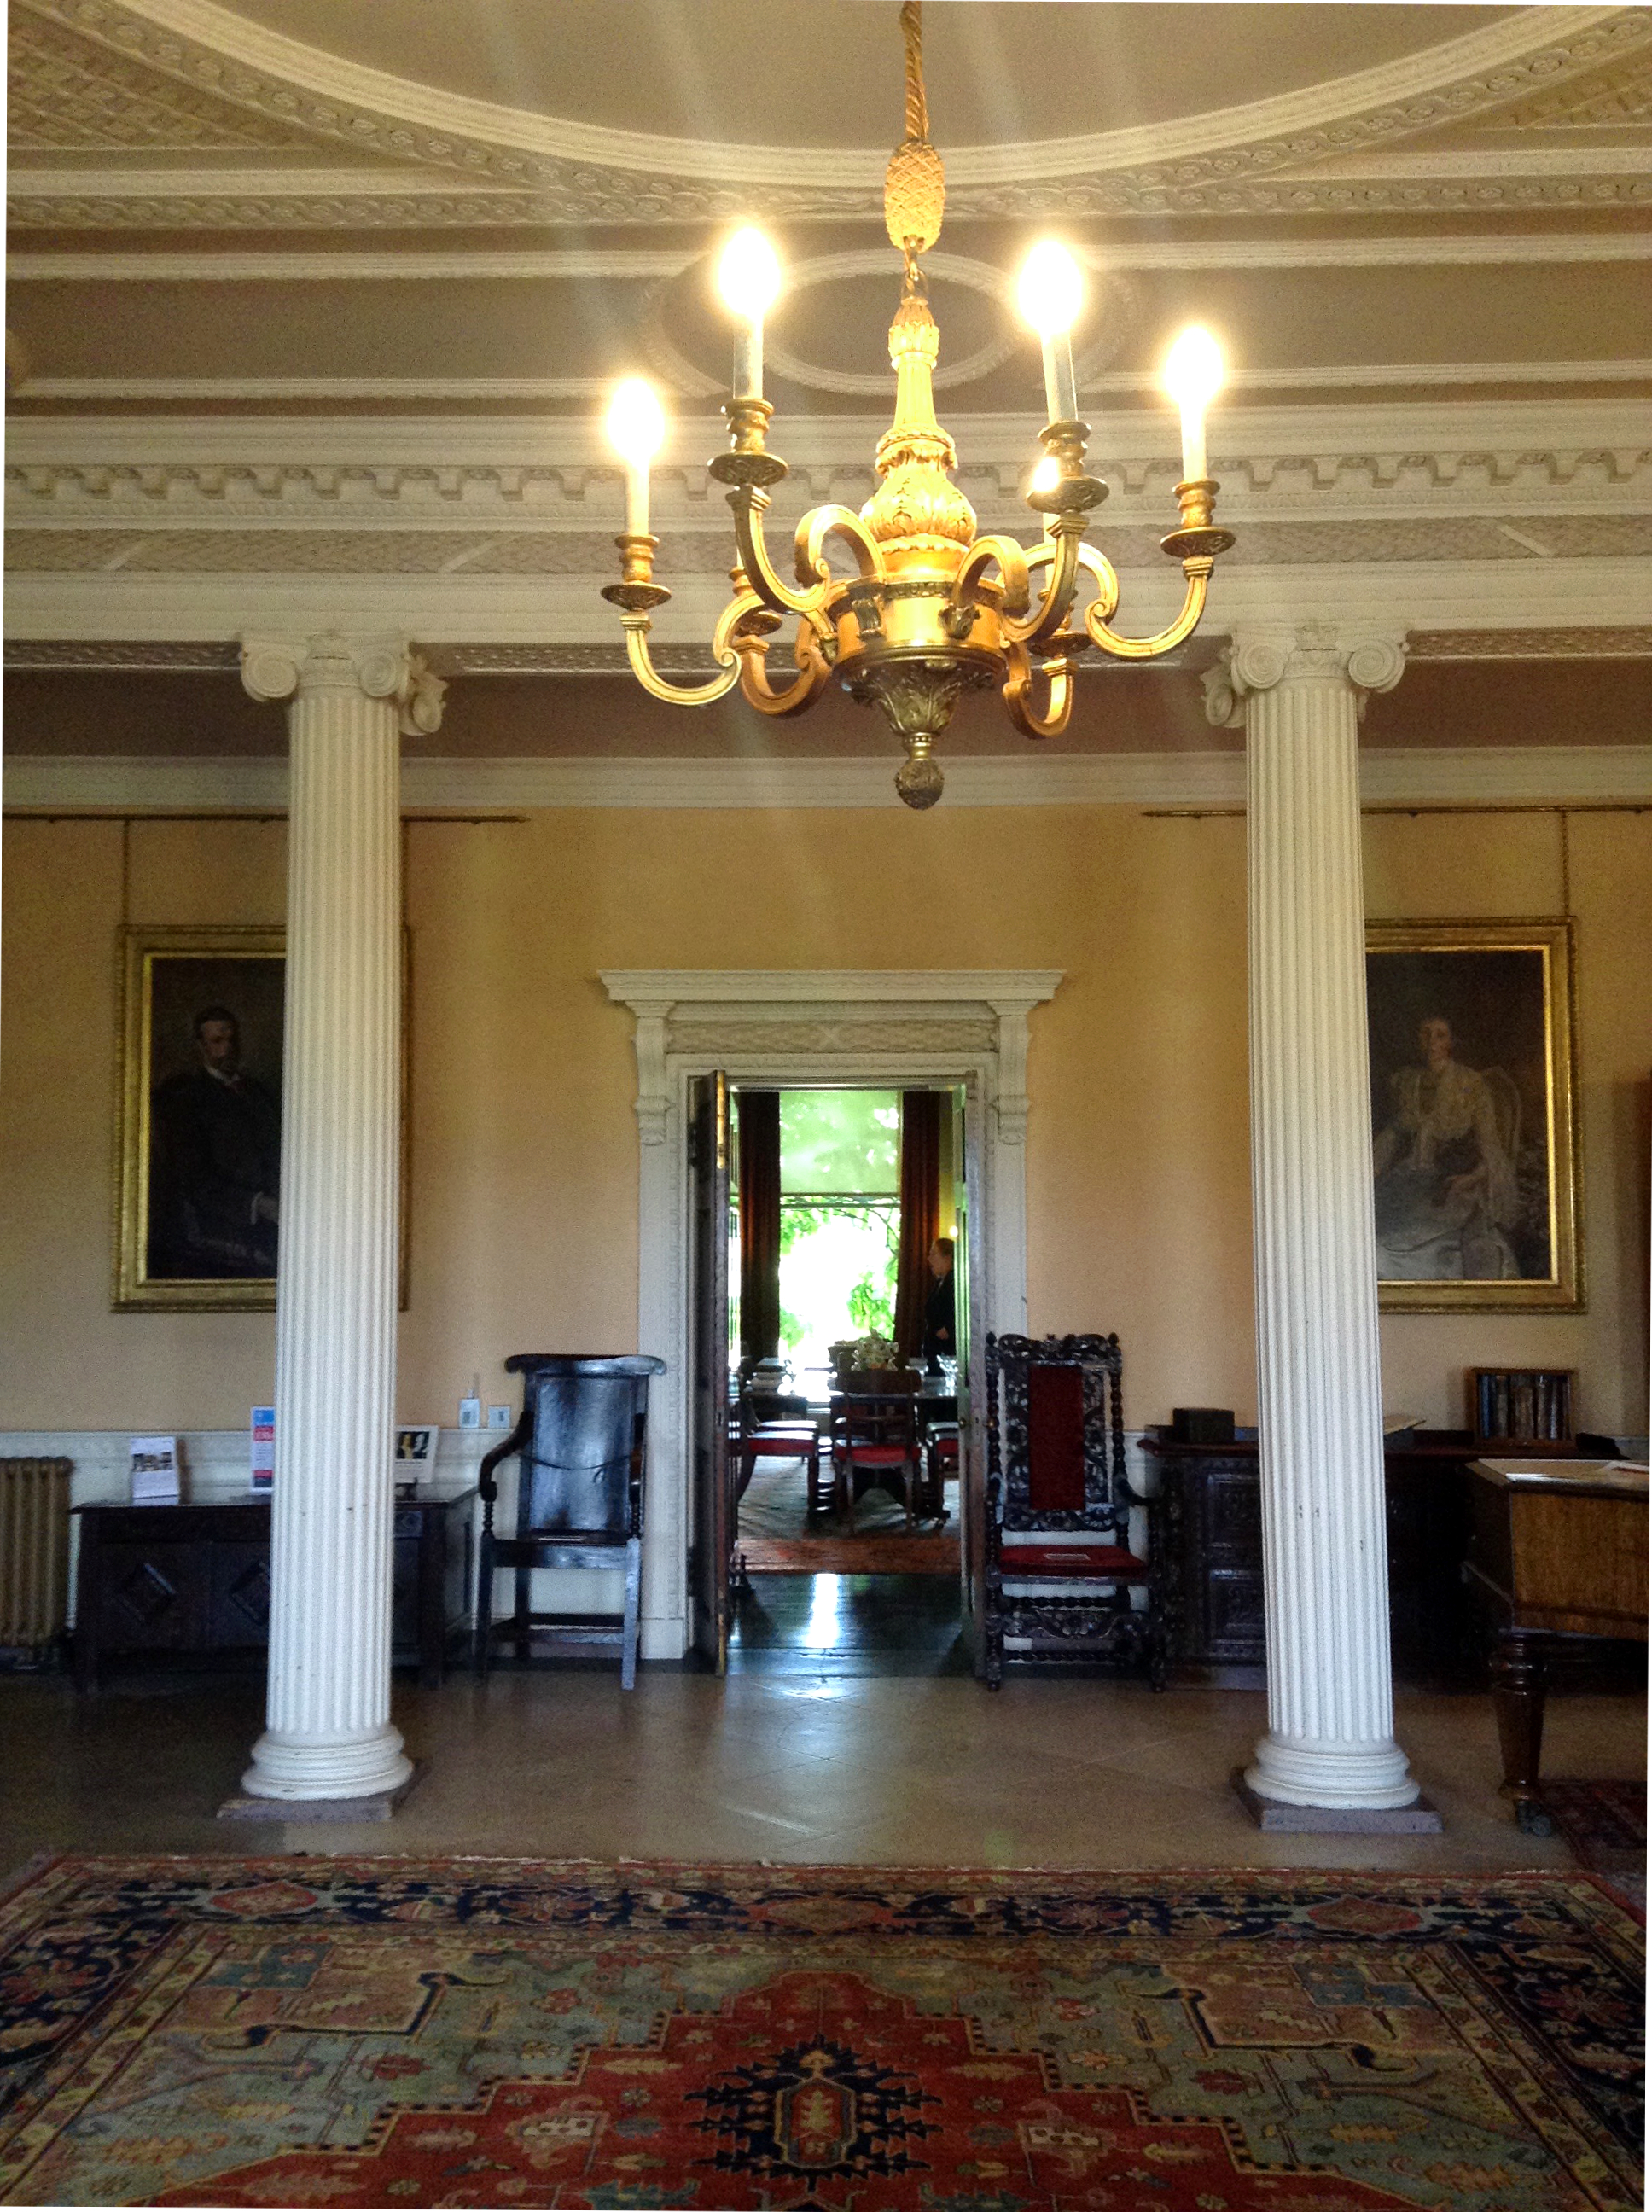 inside of a stately home with pillars and paintings and a chandelier in foreground